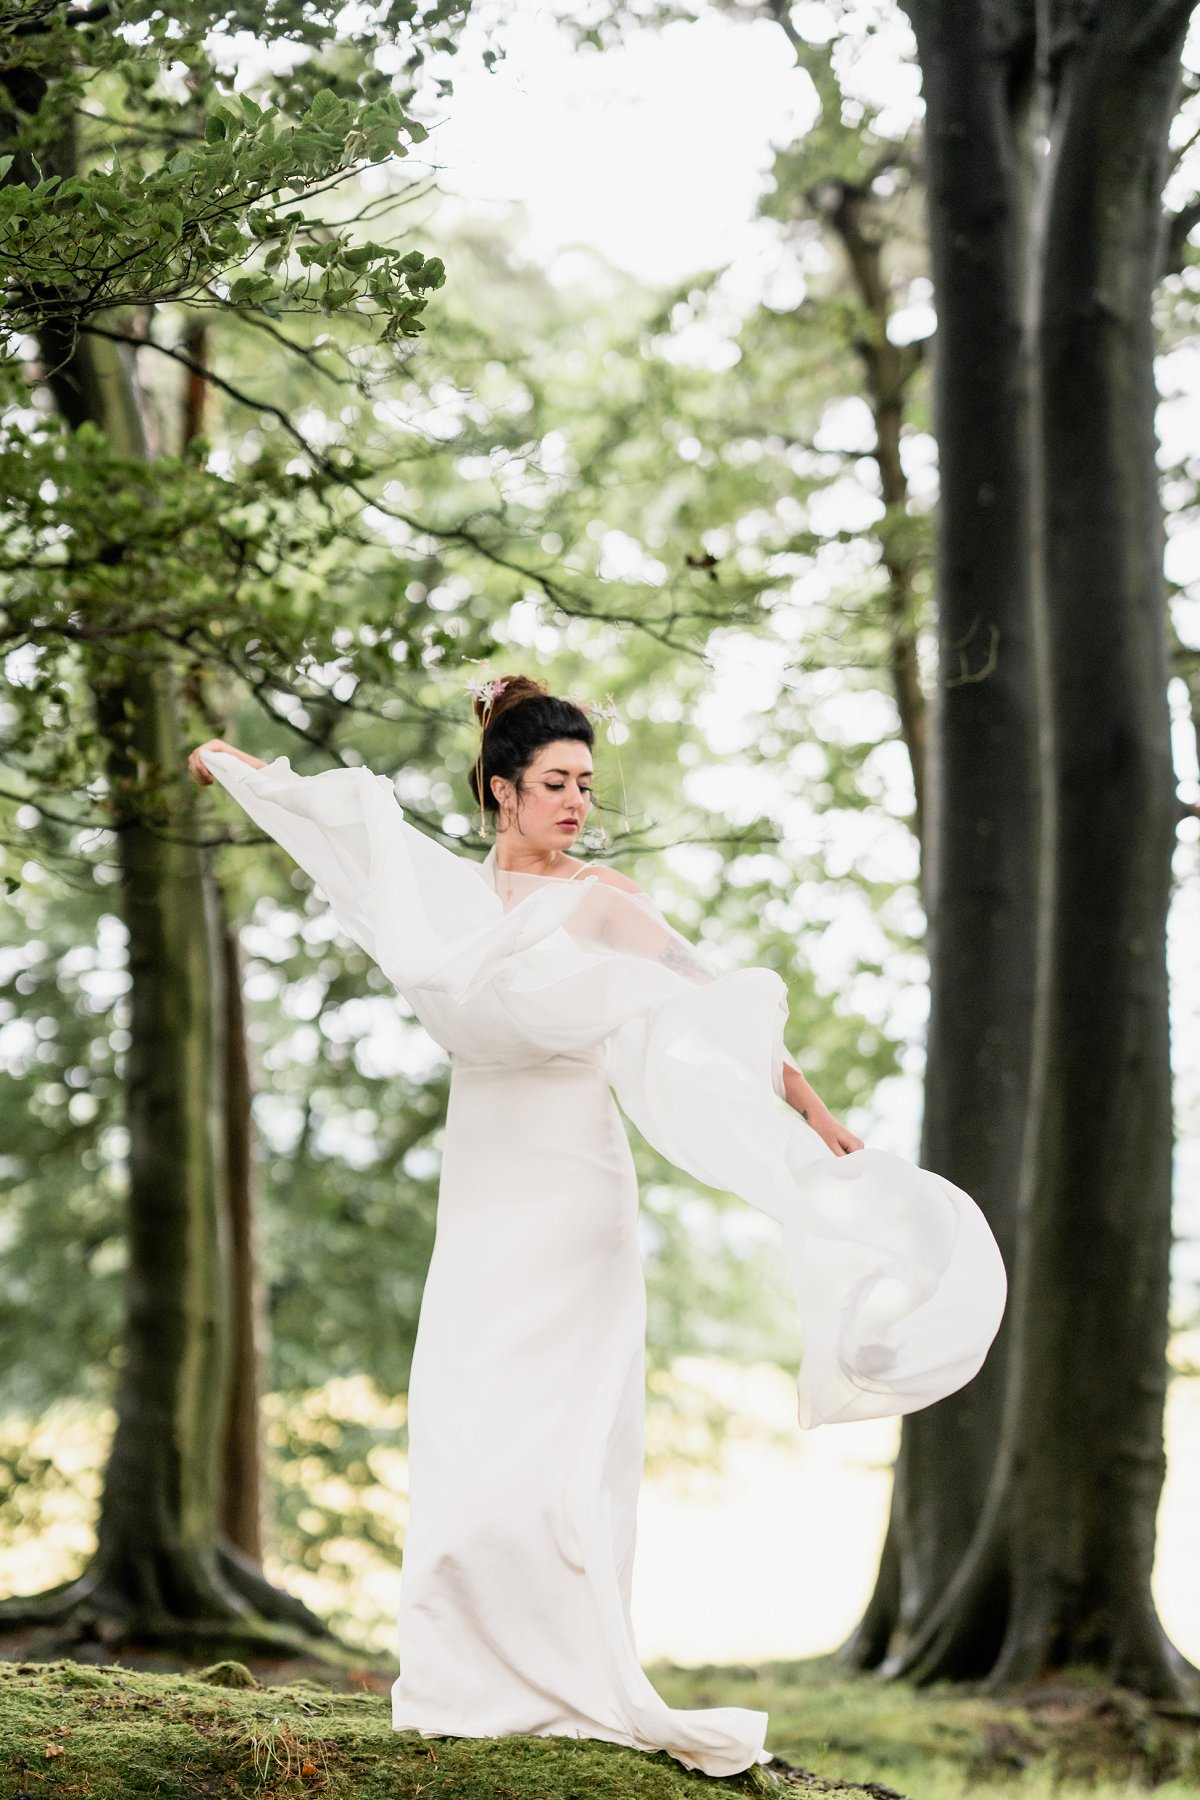 A Styled Woodland Wedding Shoot for Glorious By Heidi at Heaton House Farm (c) Charlotte Palazzo Photography (39)